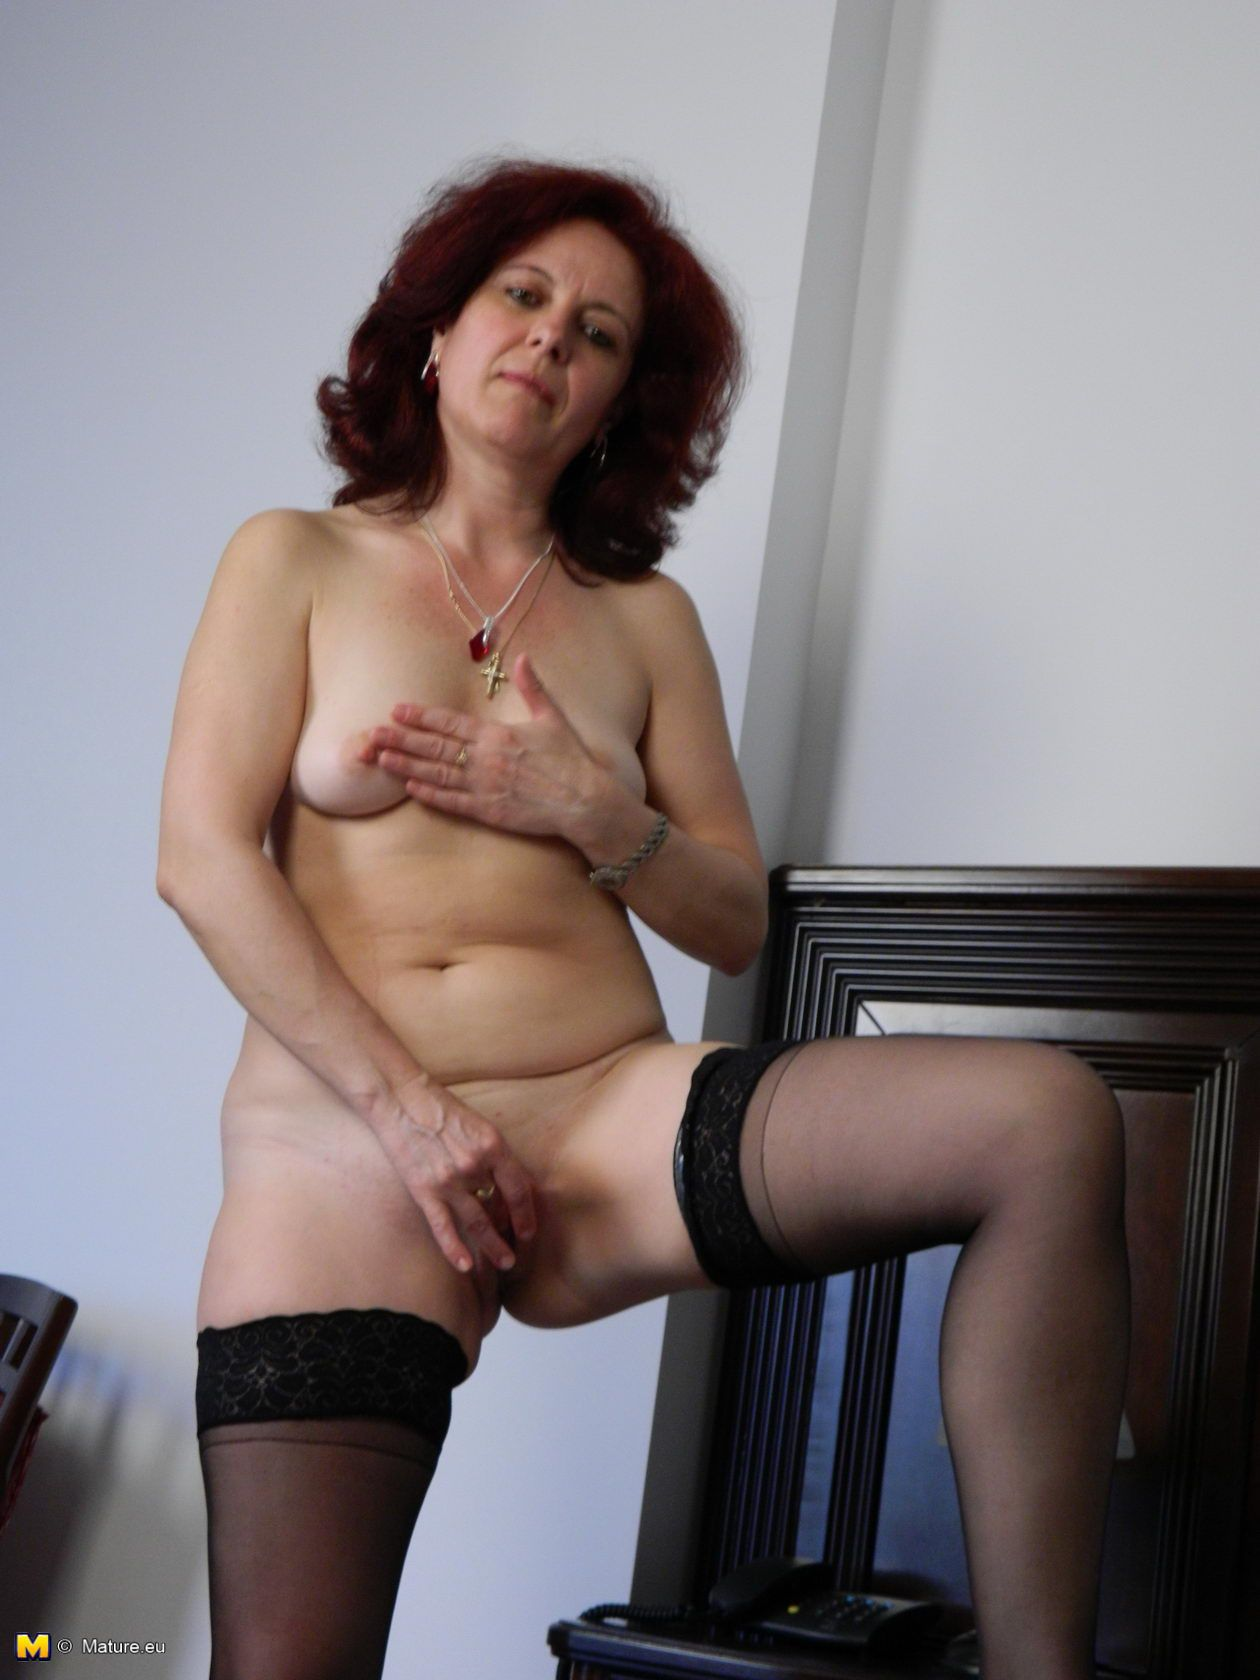 Amature Mom Porn horny nude amature moms - hot nude photos. comments: 3